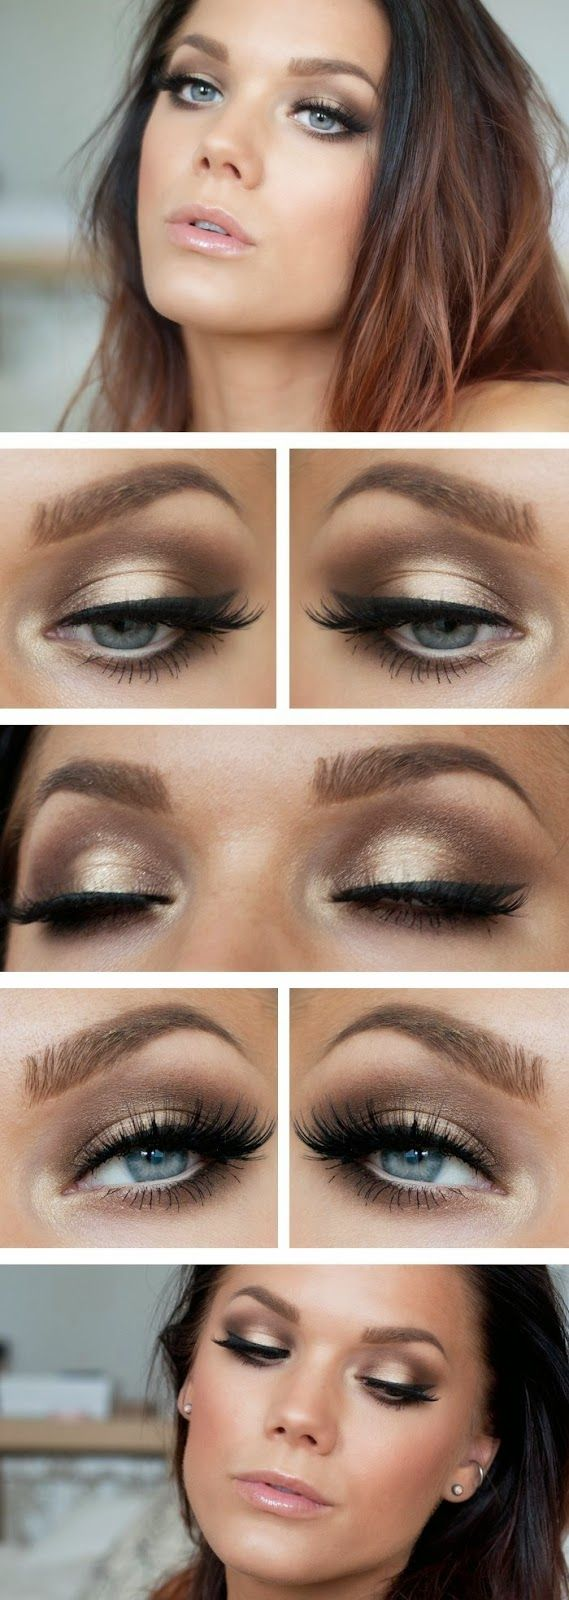 How to Chic: BEST MAKE UP FOR BRUNETTES BY LINDA HALLBERG